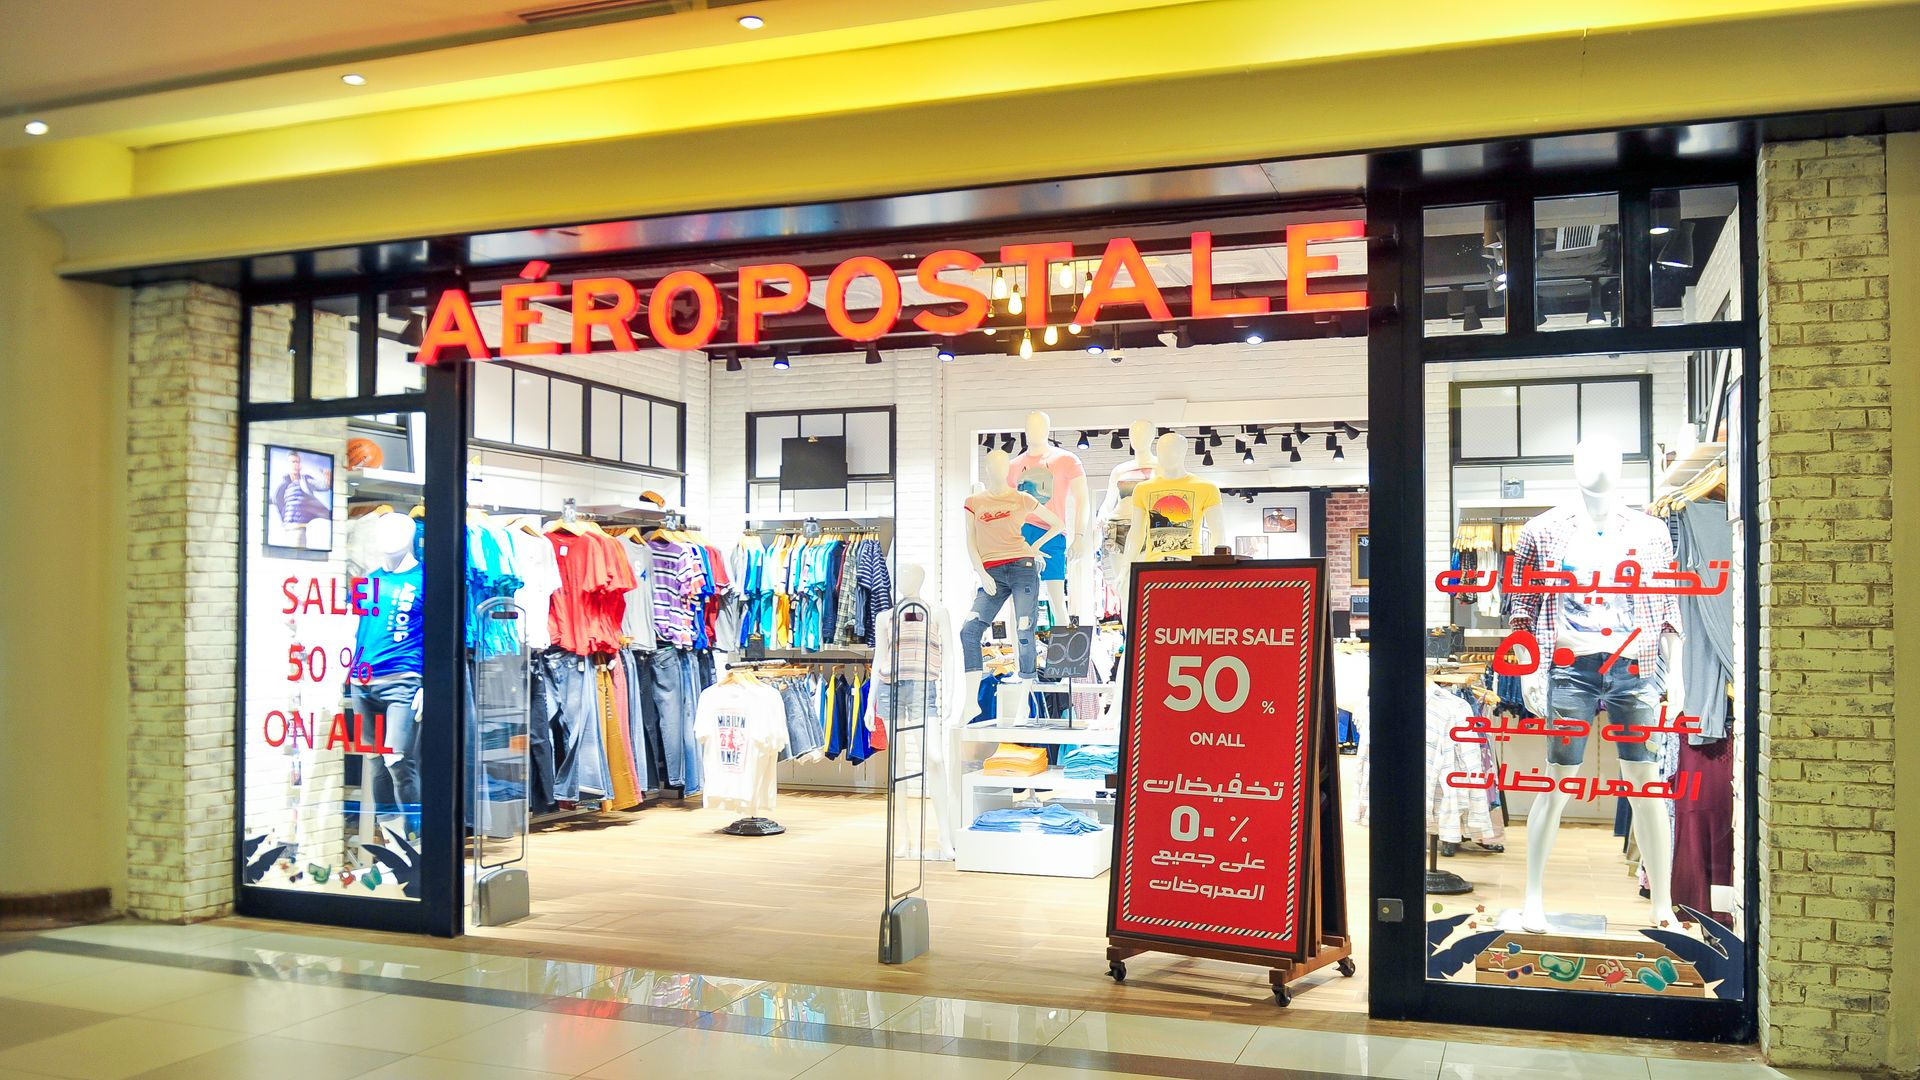 Citystars Shopping Mall  Over 750 luxurious stores